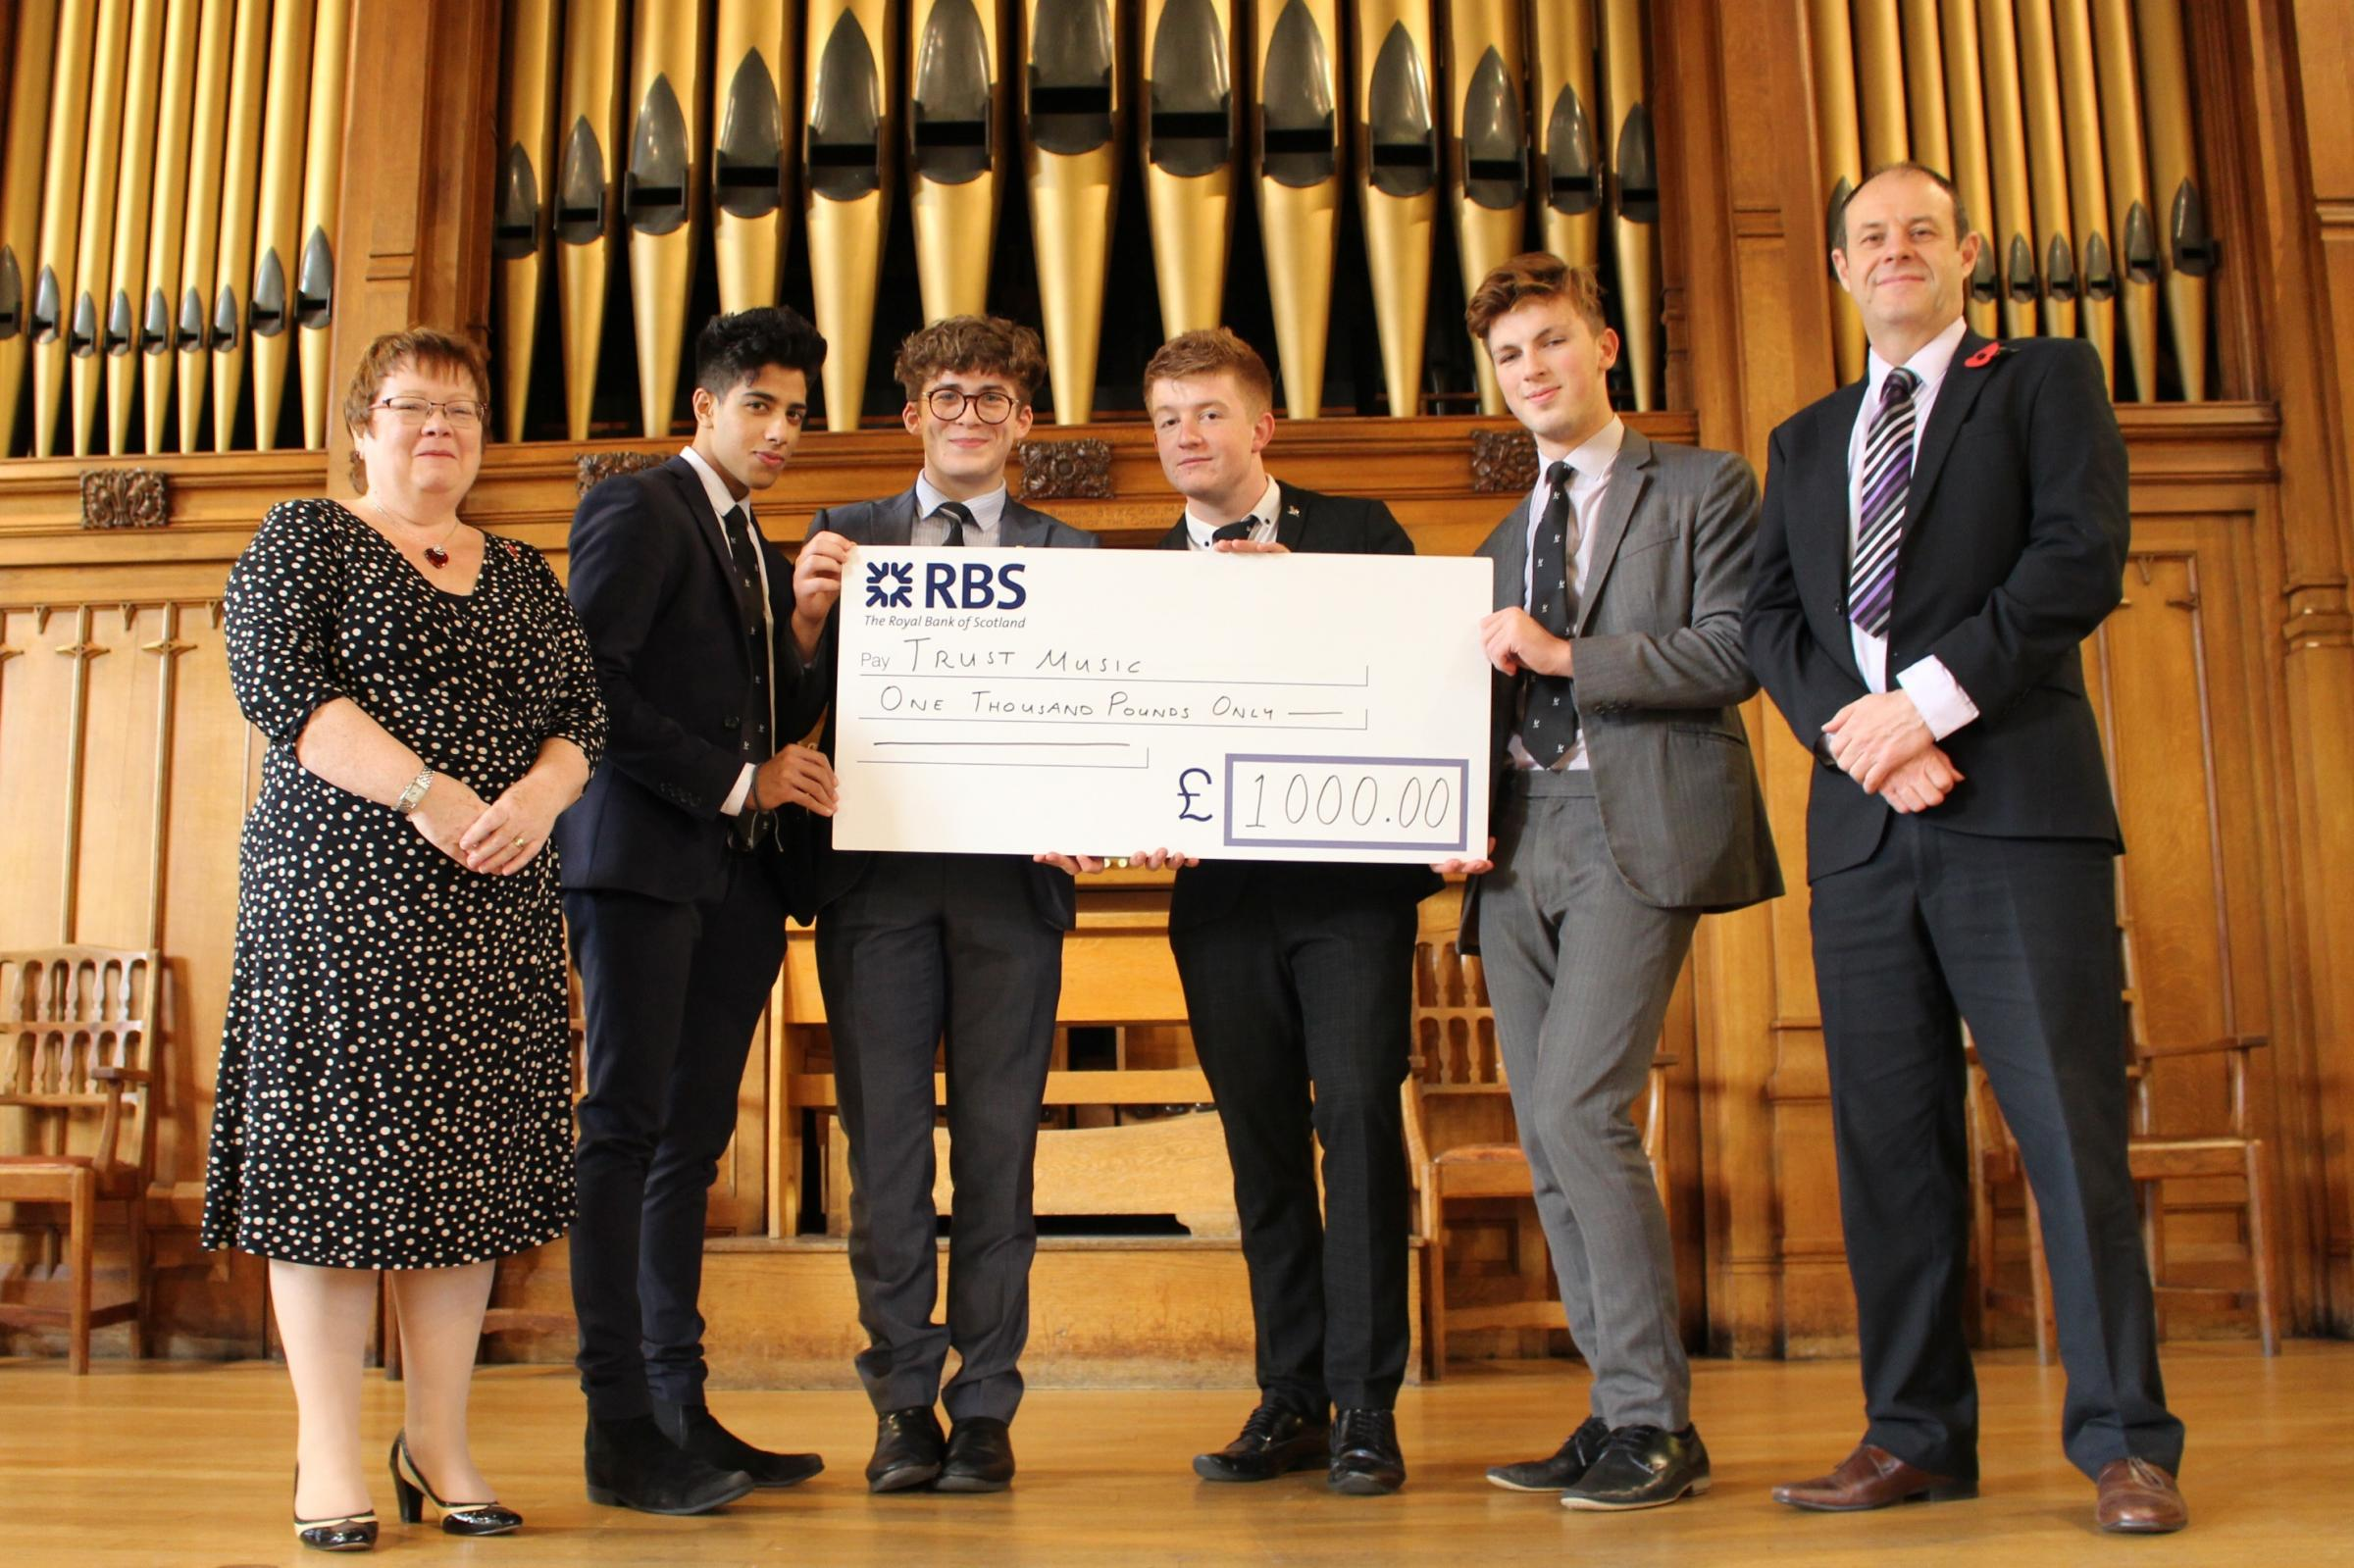 PRESENTATION: Left to right - Patricia Tremayne, Trustee of Trust Music, Hassaan Hussain, George Morgan, Adam Critchlow, Jay Harland, and Mr Jeremy Bleasdale (Head of Music at Bolton School Boys' Division